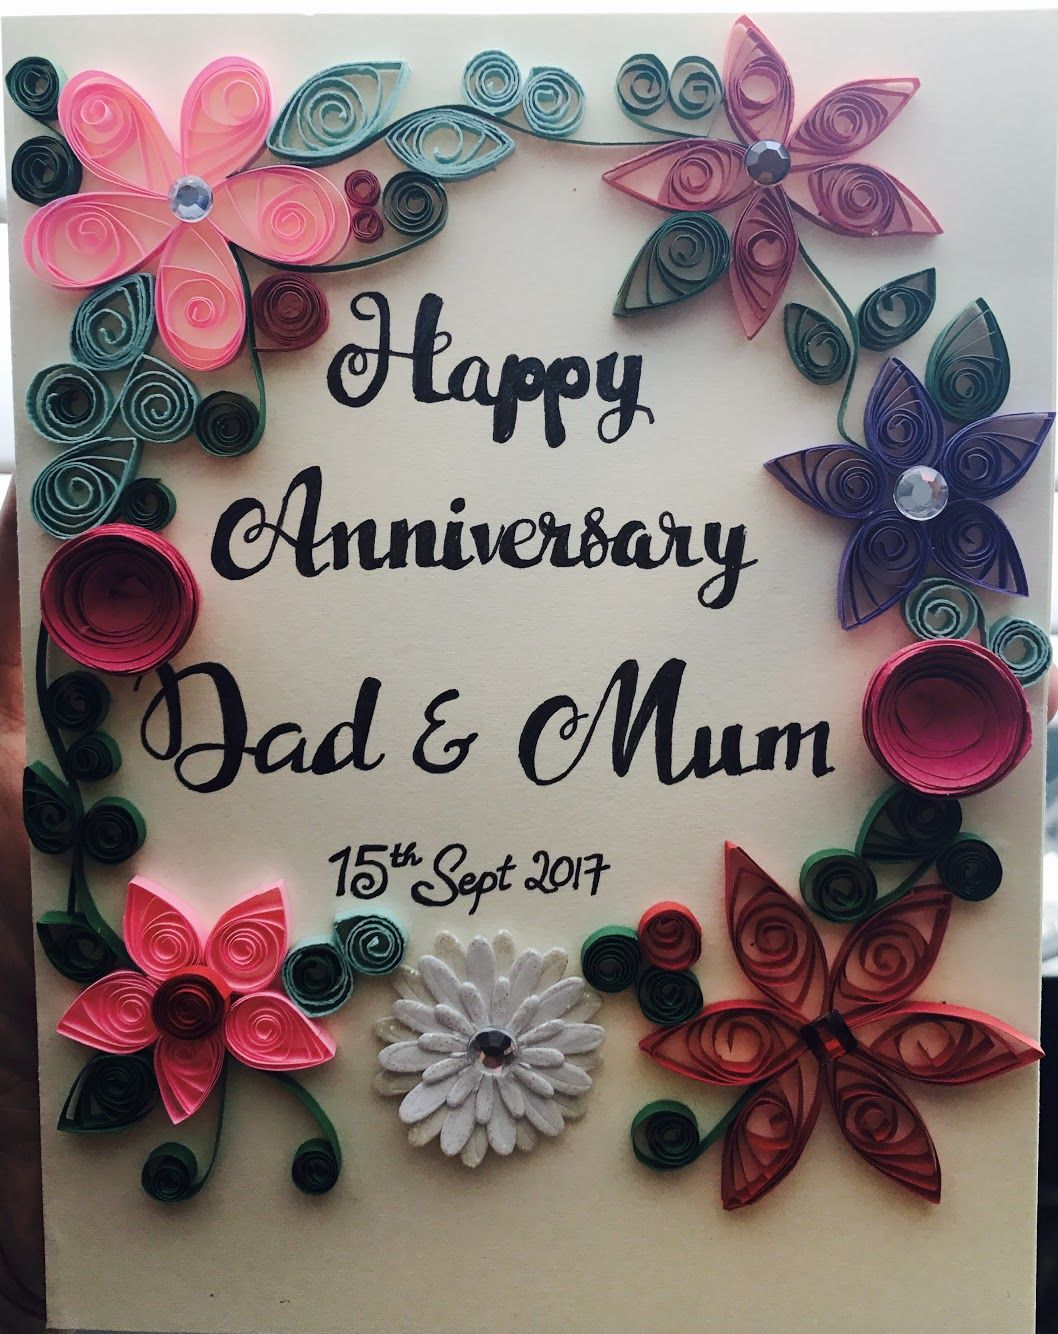 Happy Anniversary Greeting Card Anniversary Cards Handmade Diy Anniversary Cards For Parents Anniversary Greeting Cards